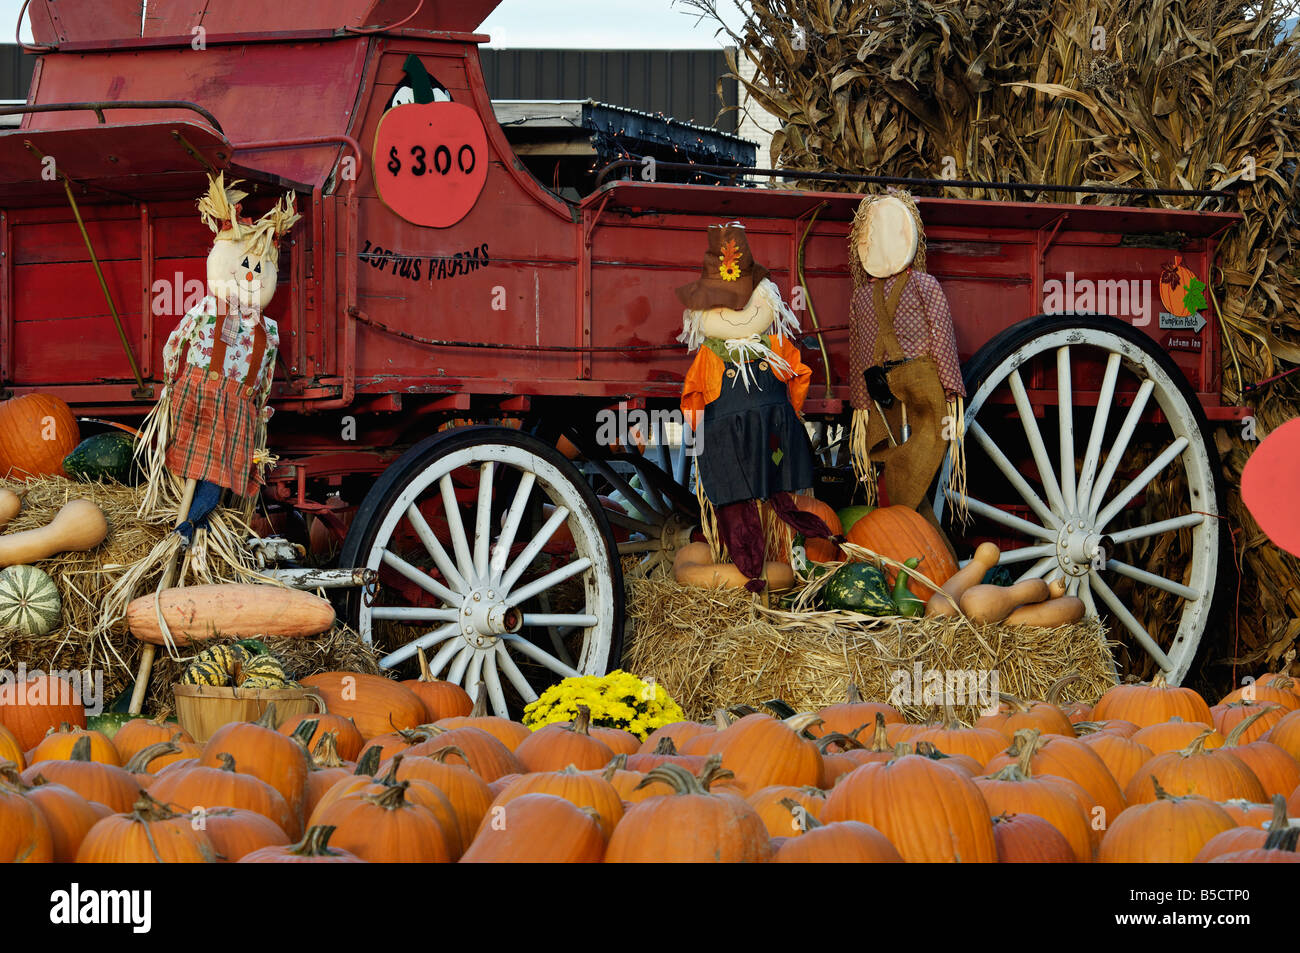 Pumpkins Old Red Wagon Corn Stalks And Decorative Scarecrows Stock